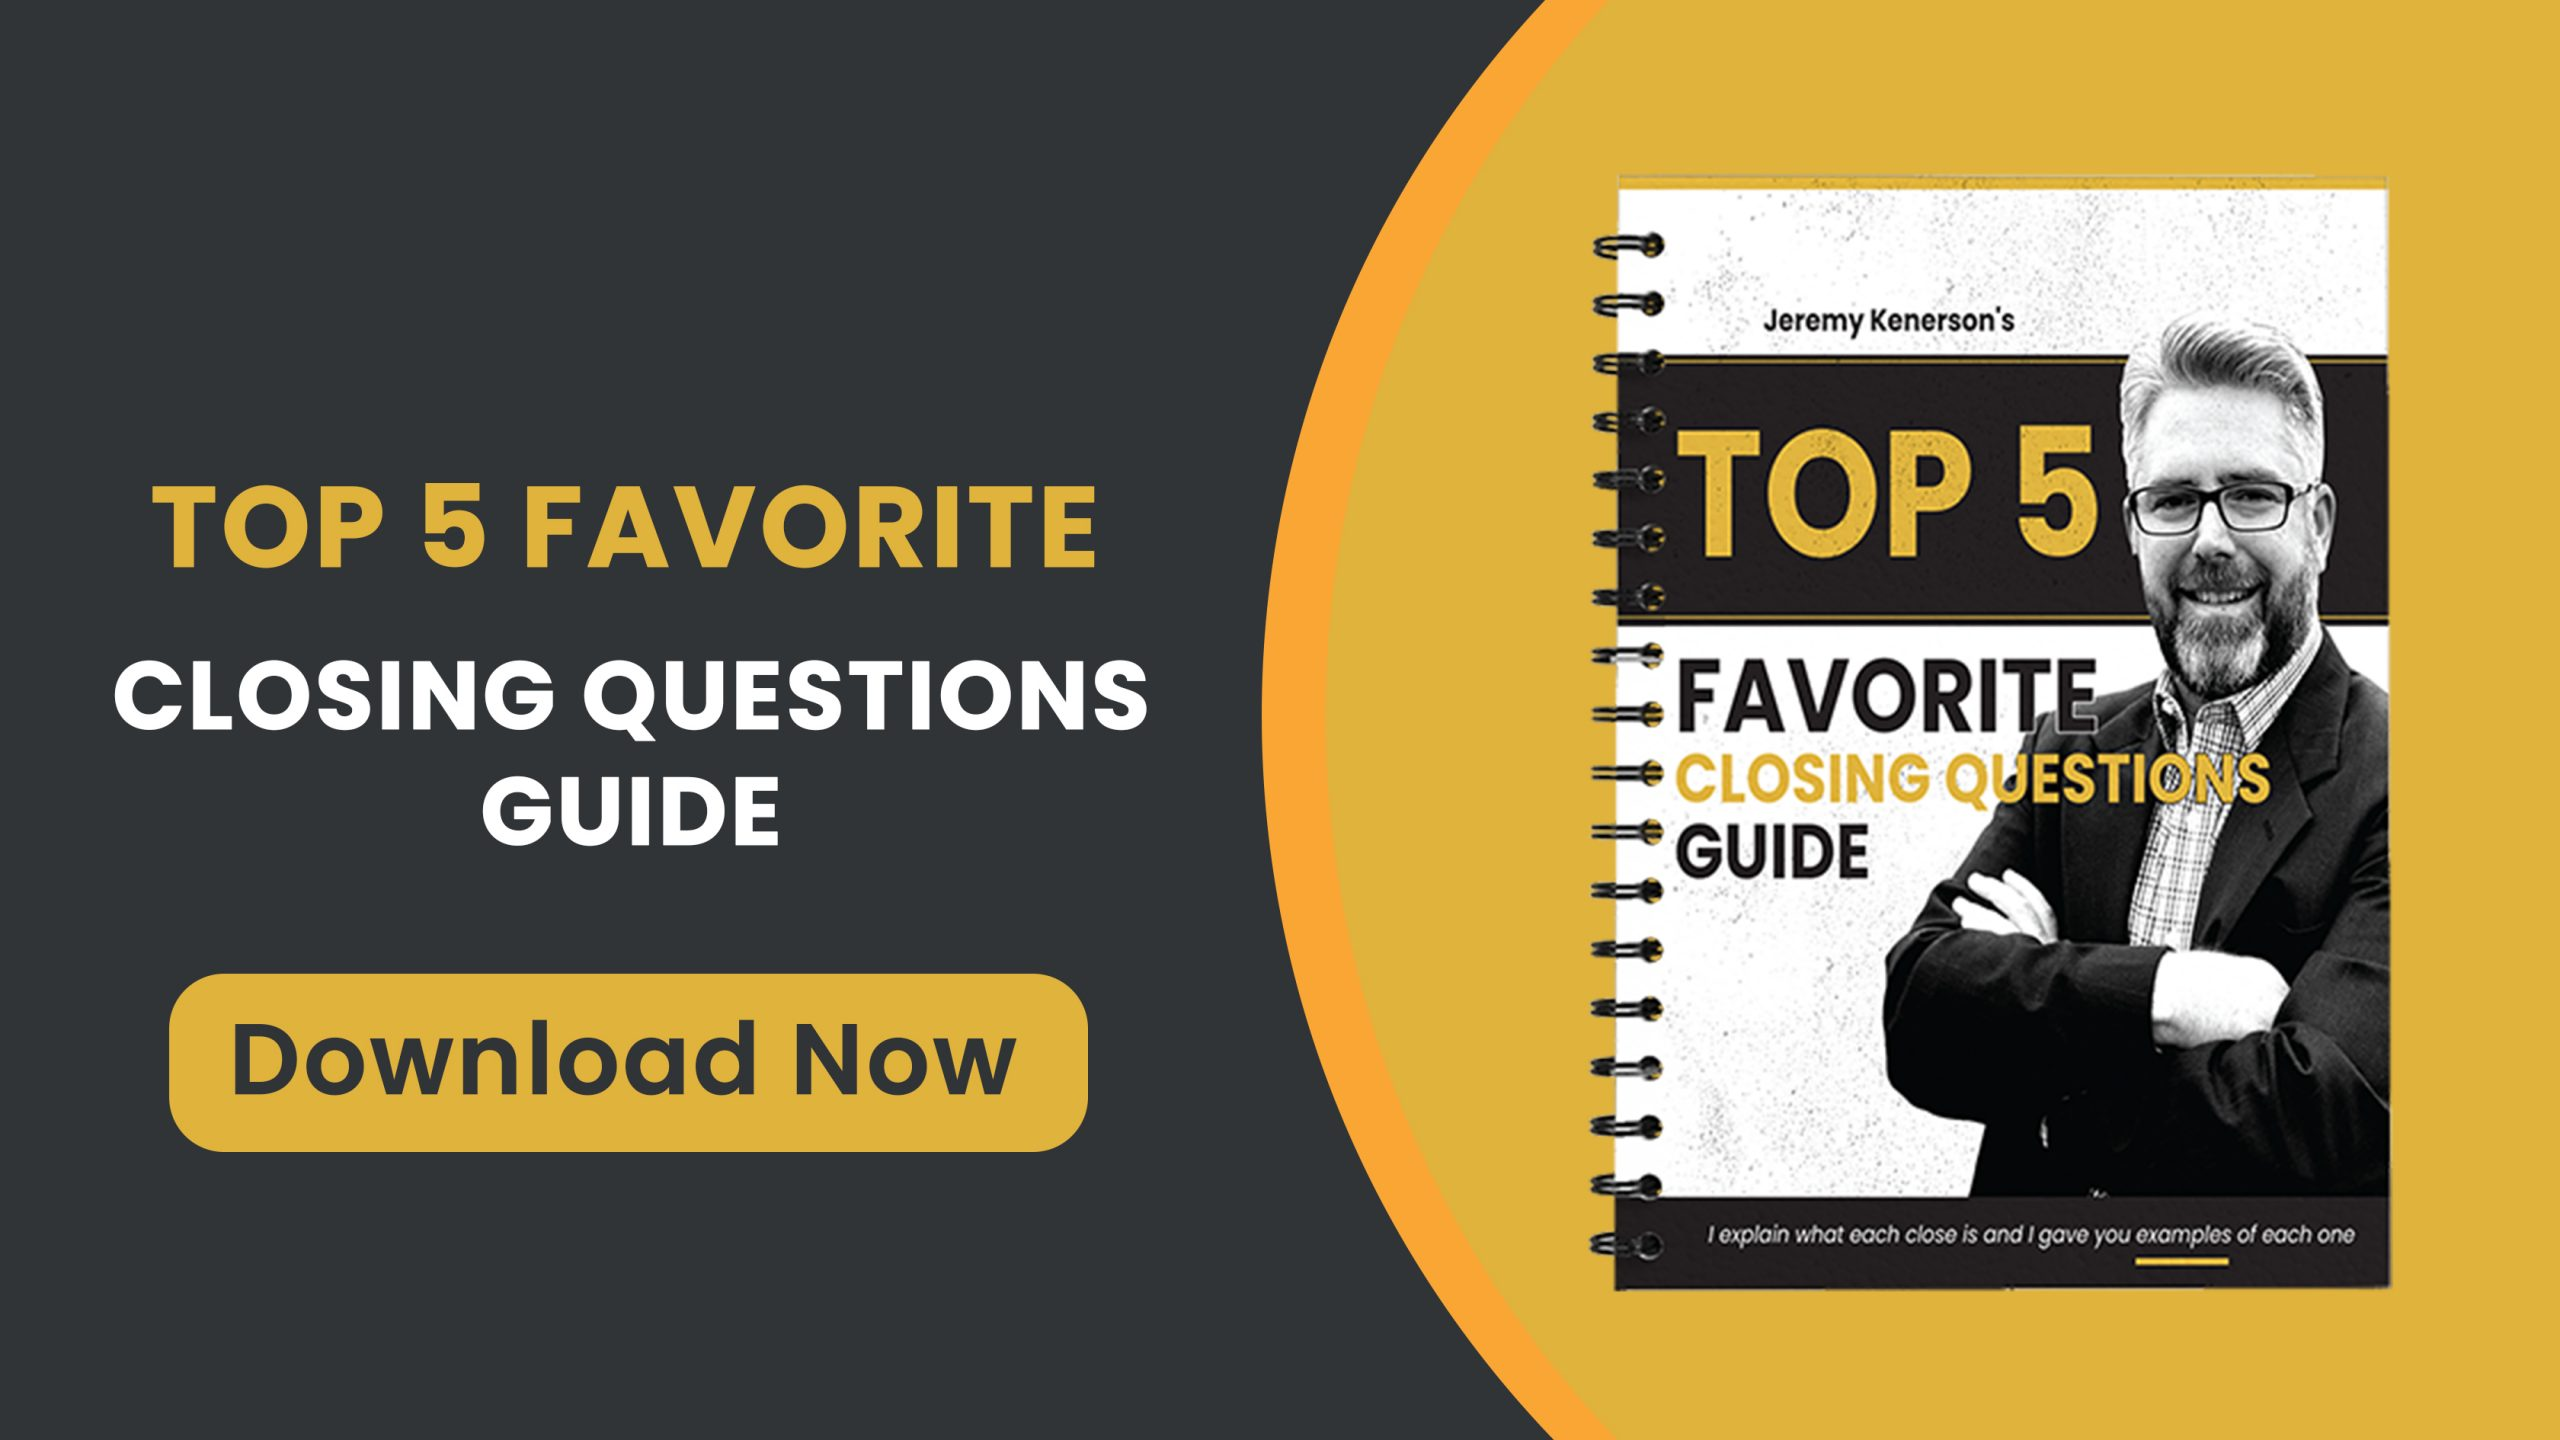 the Top 5 Favorite Closing Questions Guide Download now